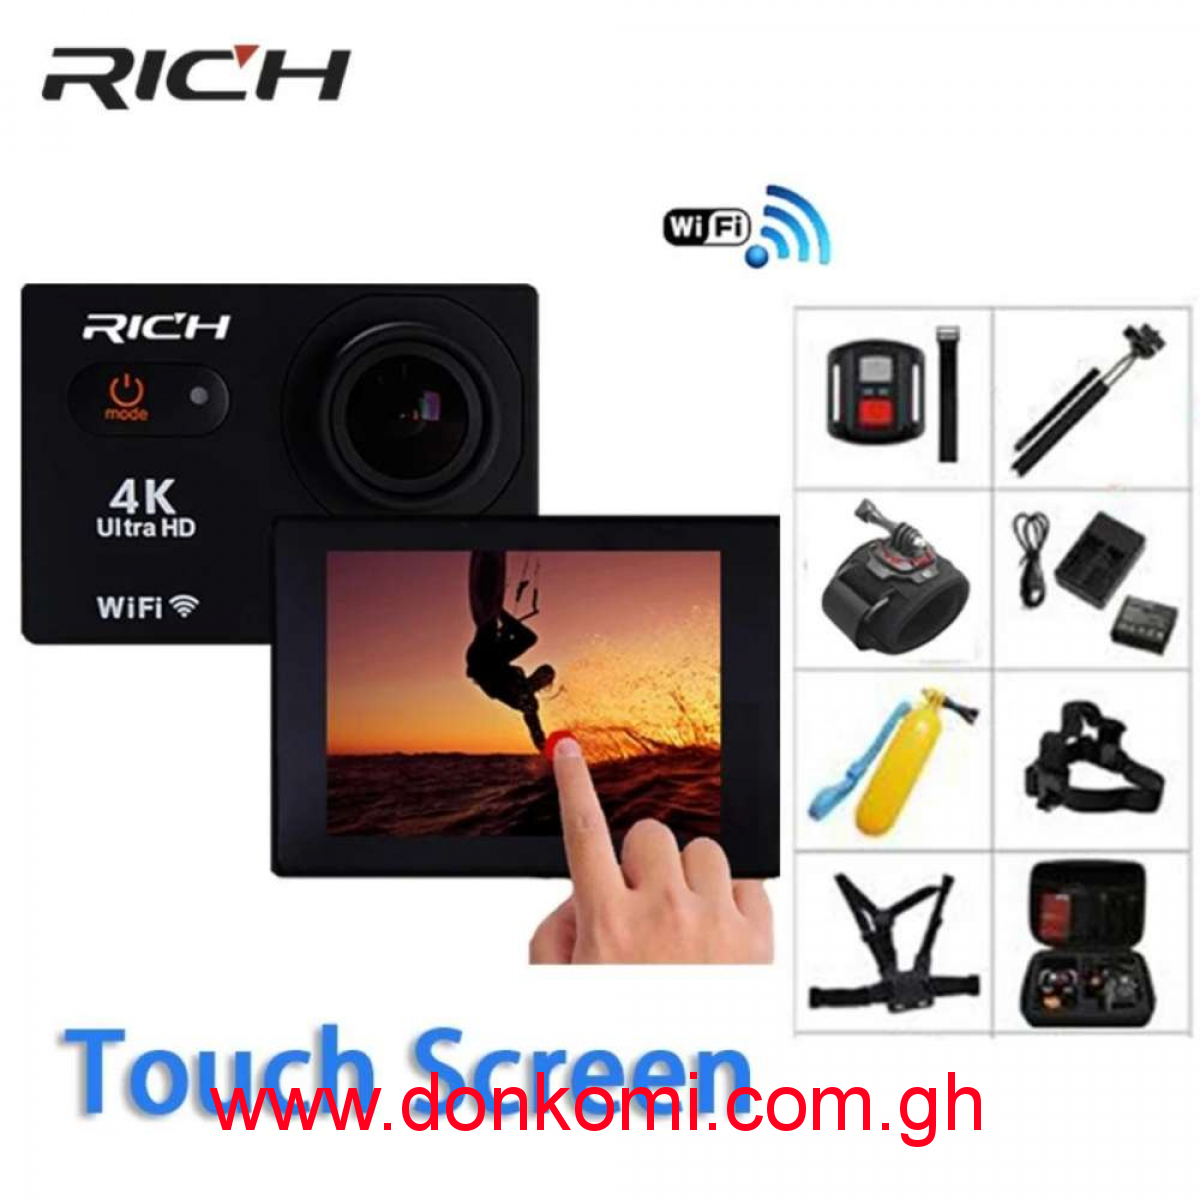 4K 1080P remote control waterproof touch screen WiFi  Camera